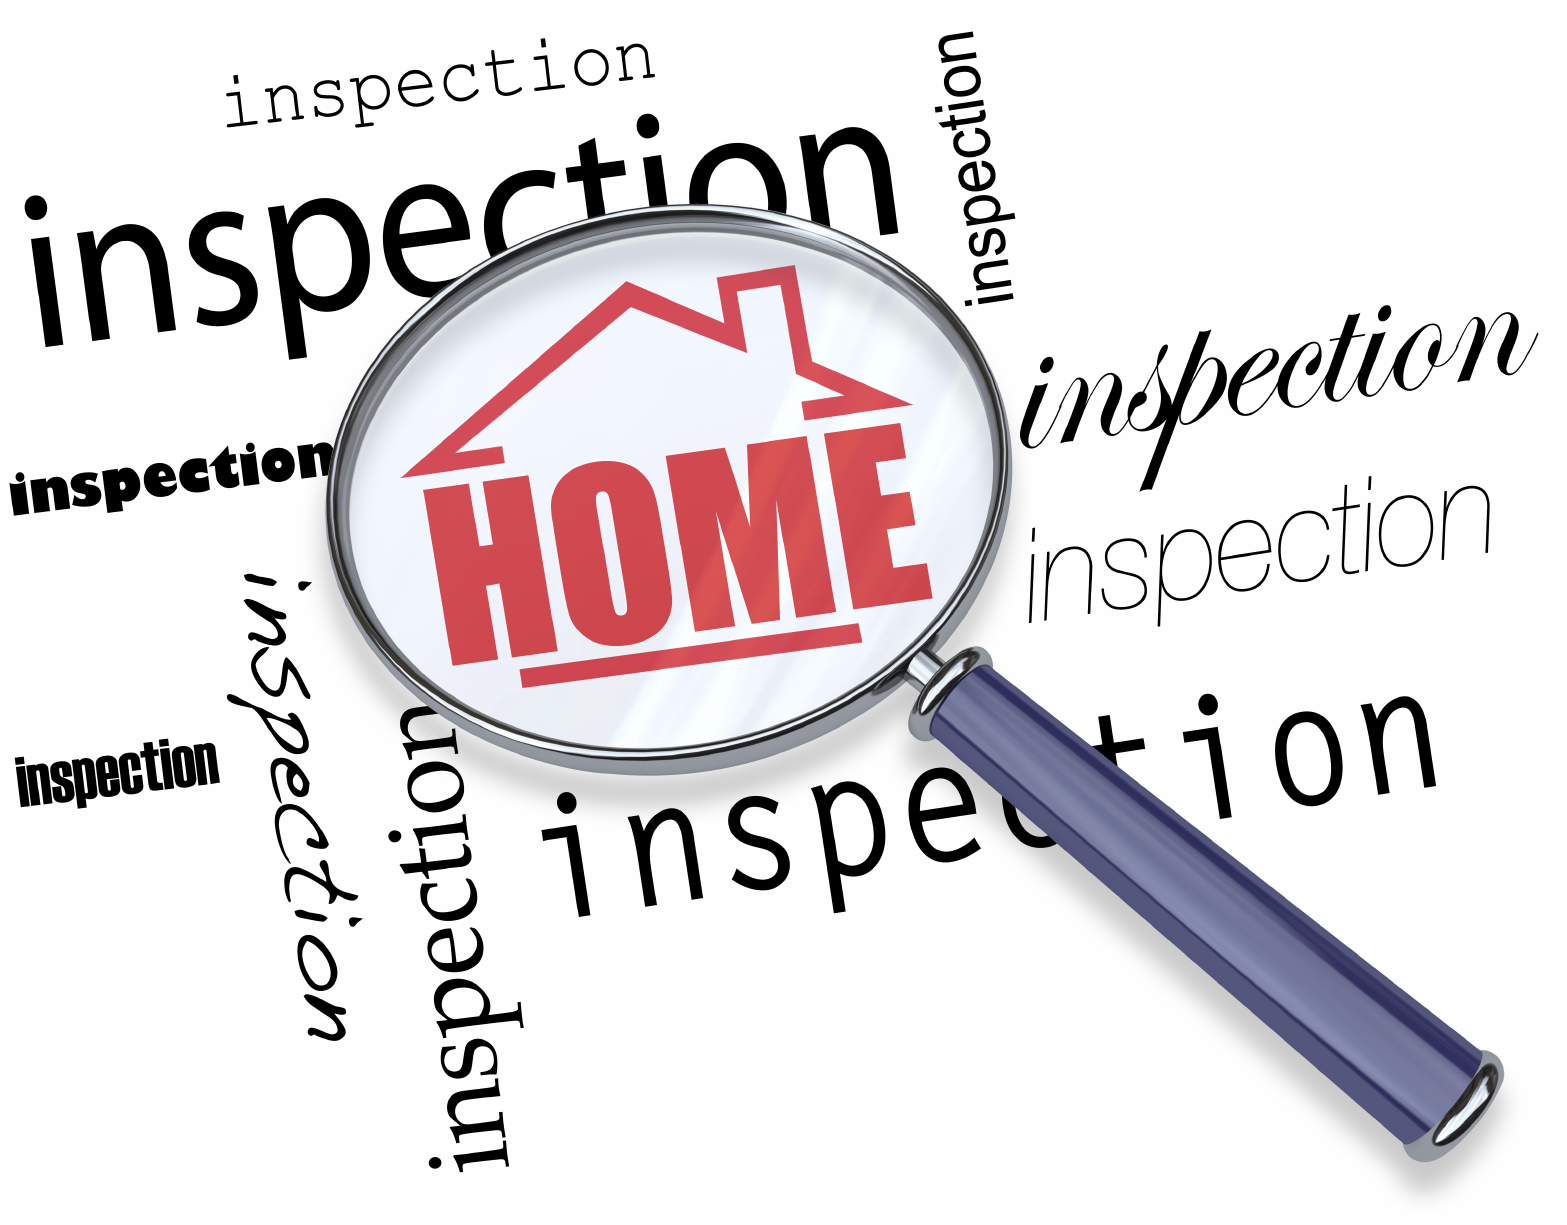 What you need for passing inspection